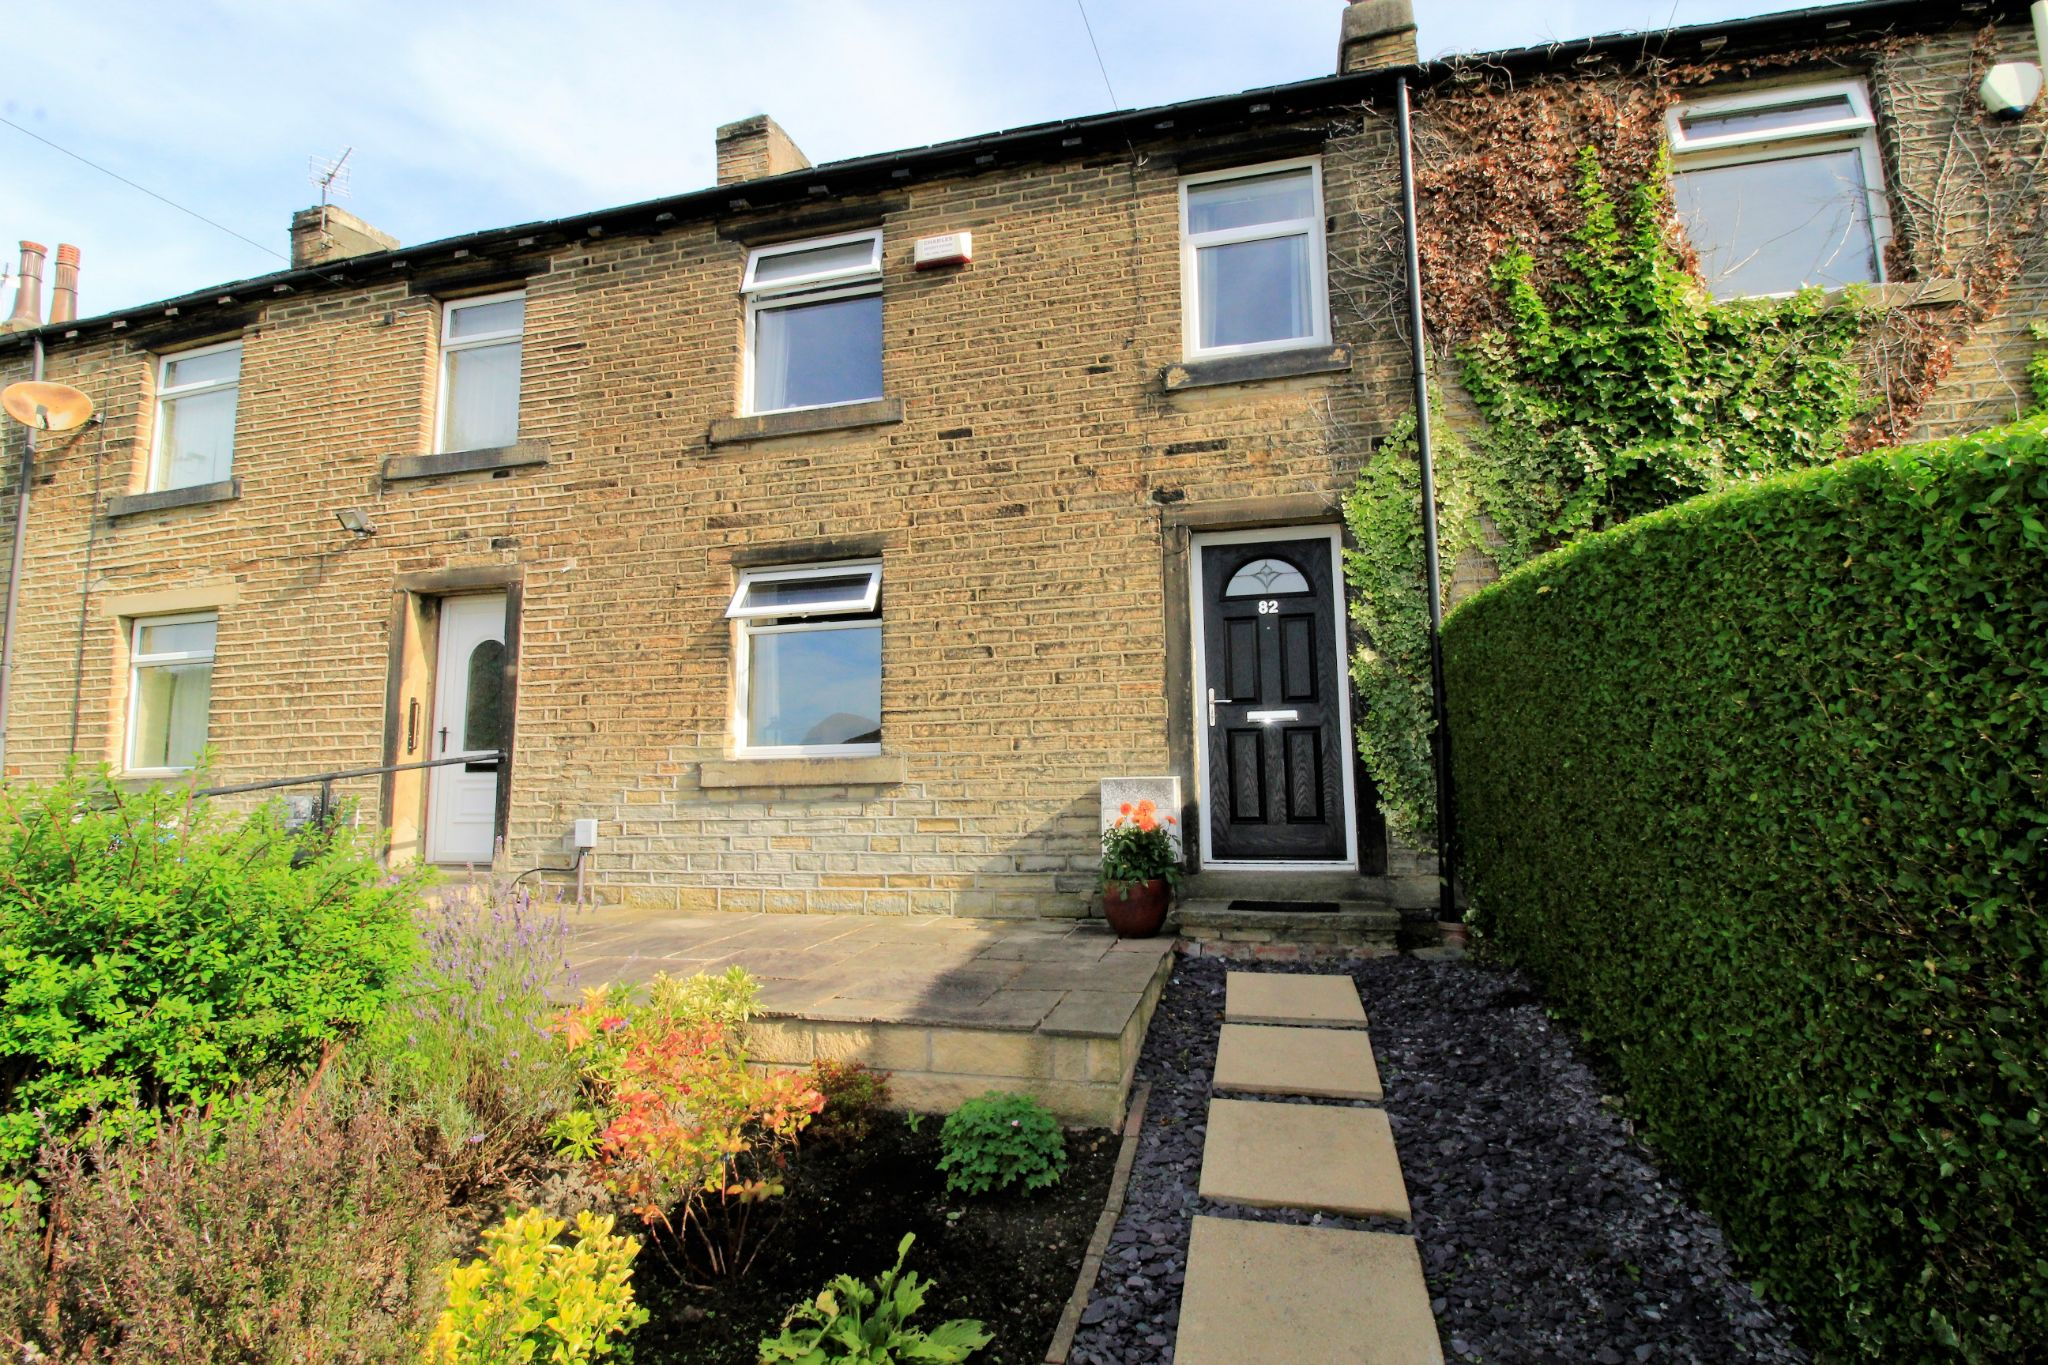 2 bedroom cottage house SSTC in Huddersfield - Front aspect